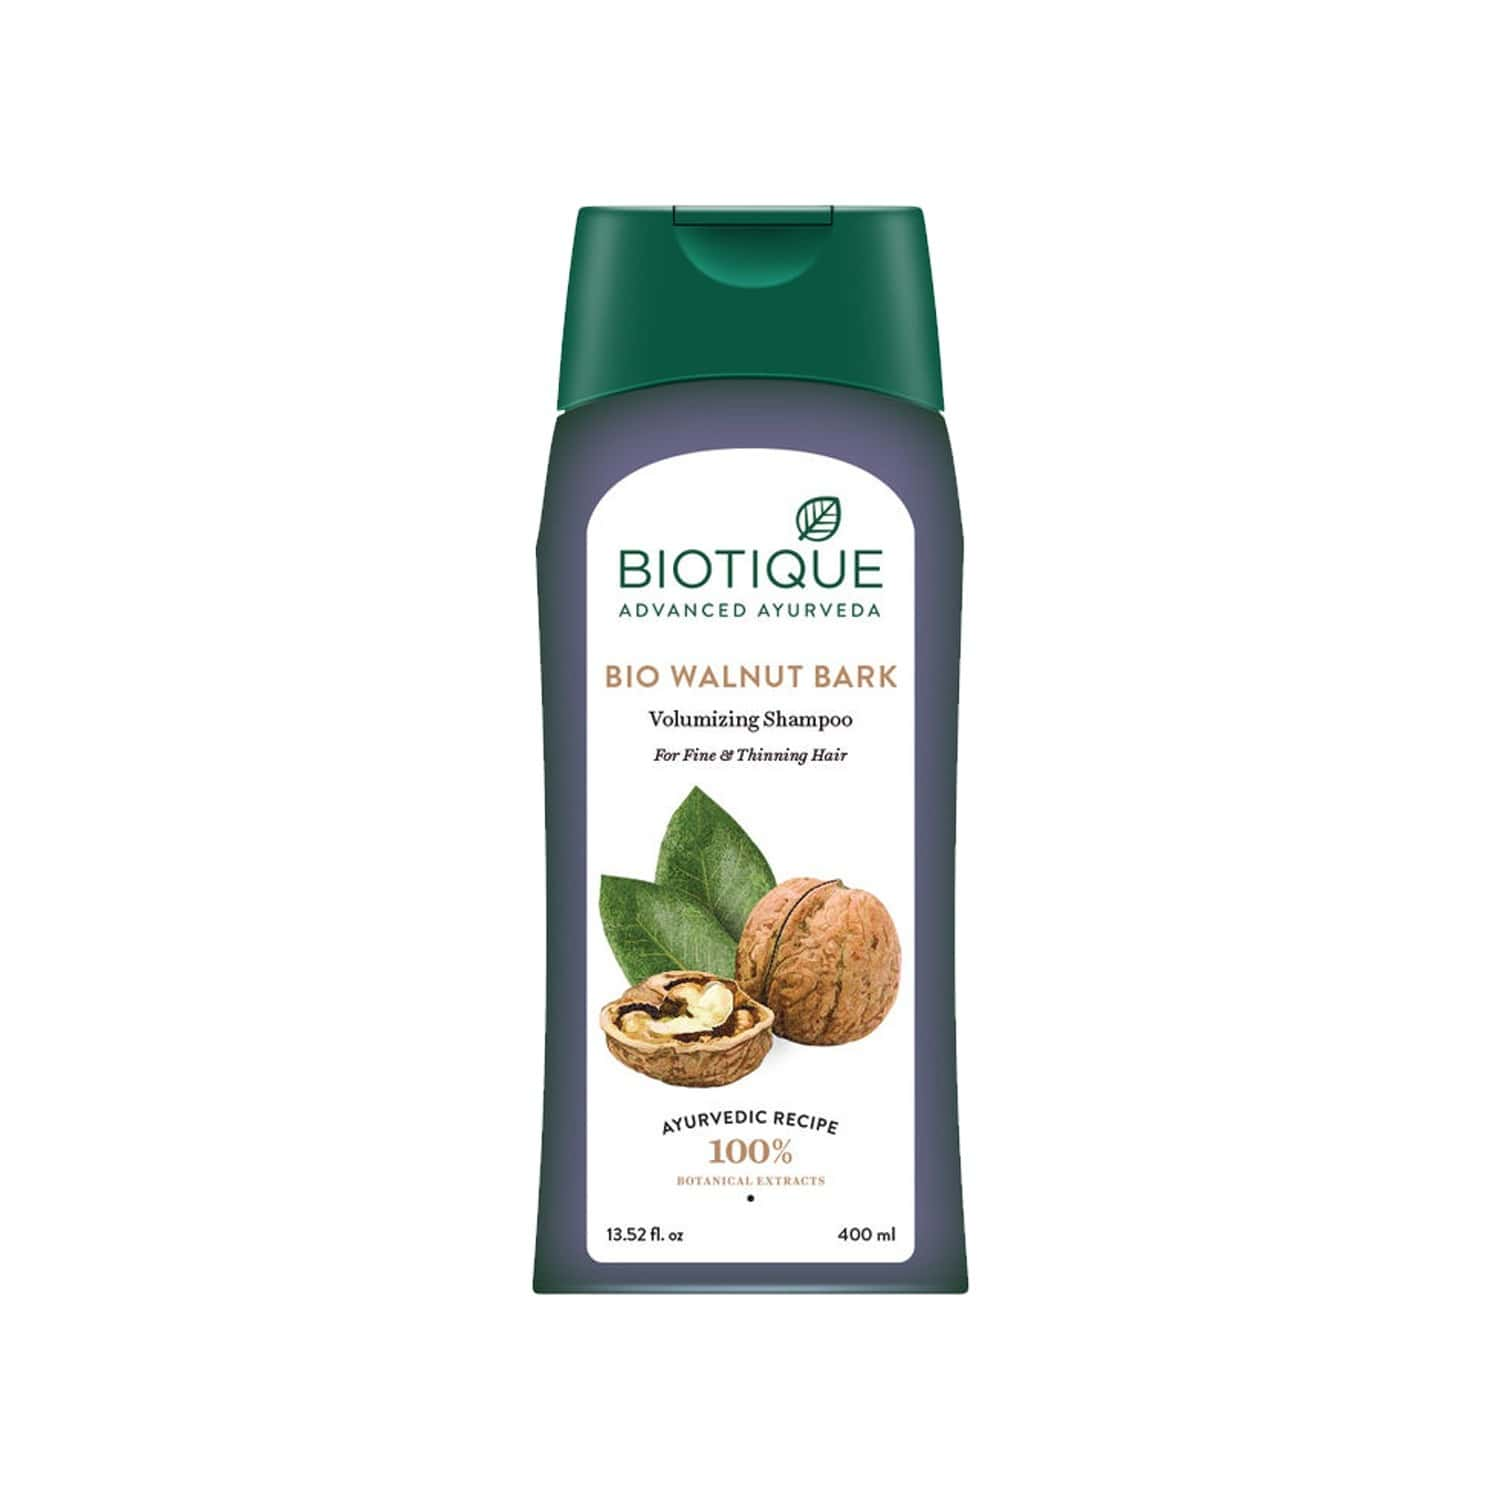 Biotique Bio Walnut Bark Voluminzing Shampoo For Fine & Thining Hair - 340 Ml